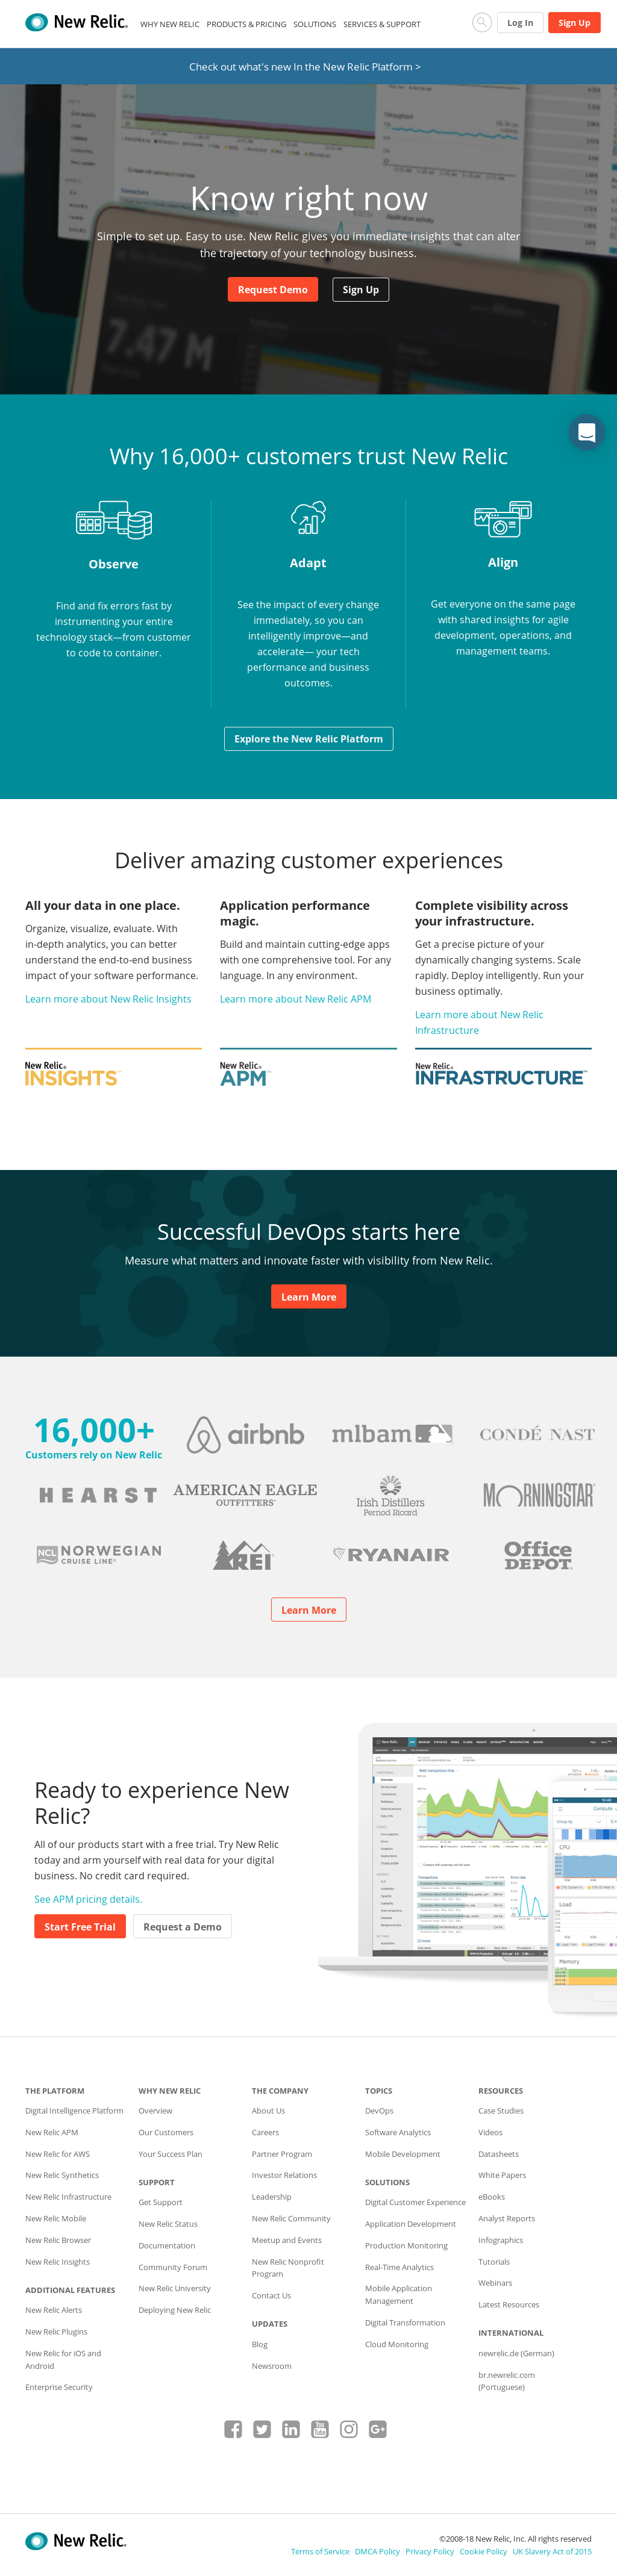 New Relic Competitors, Revenue and Employees - Owler Company